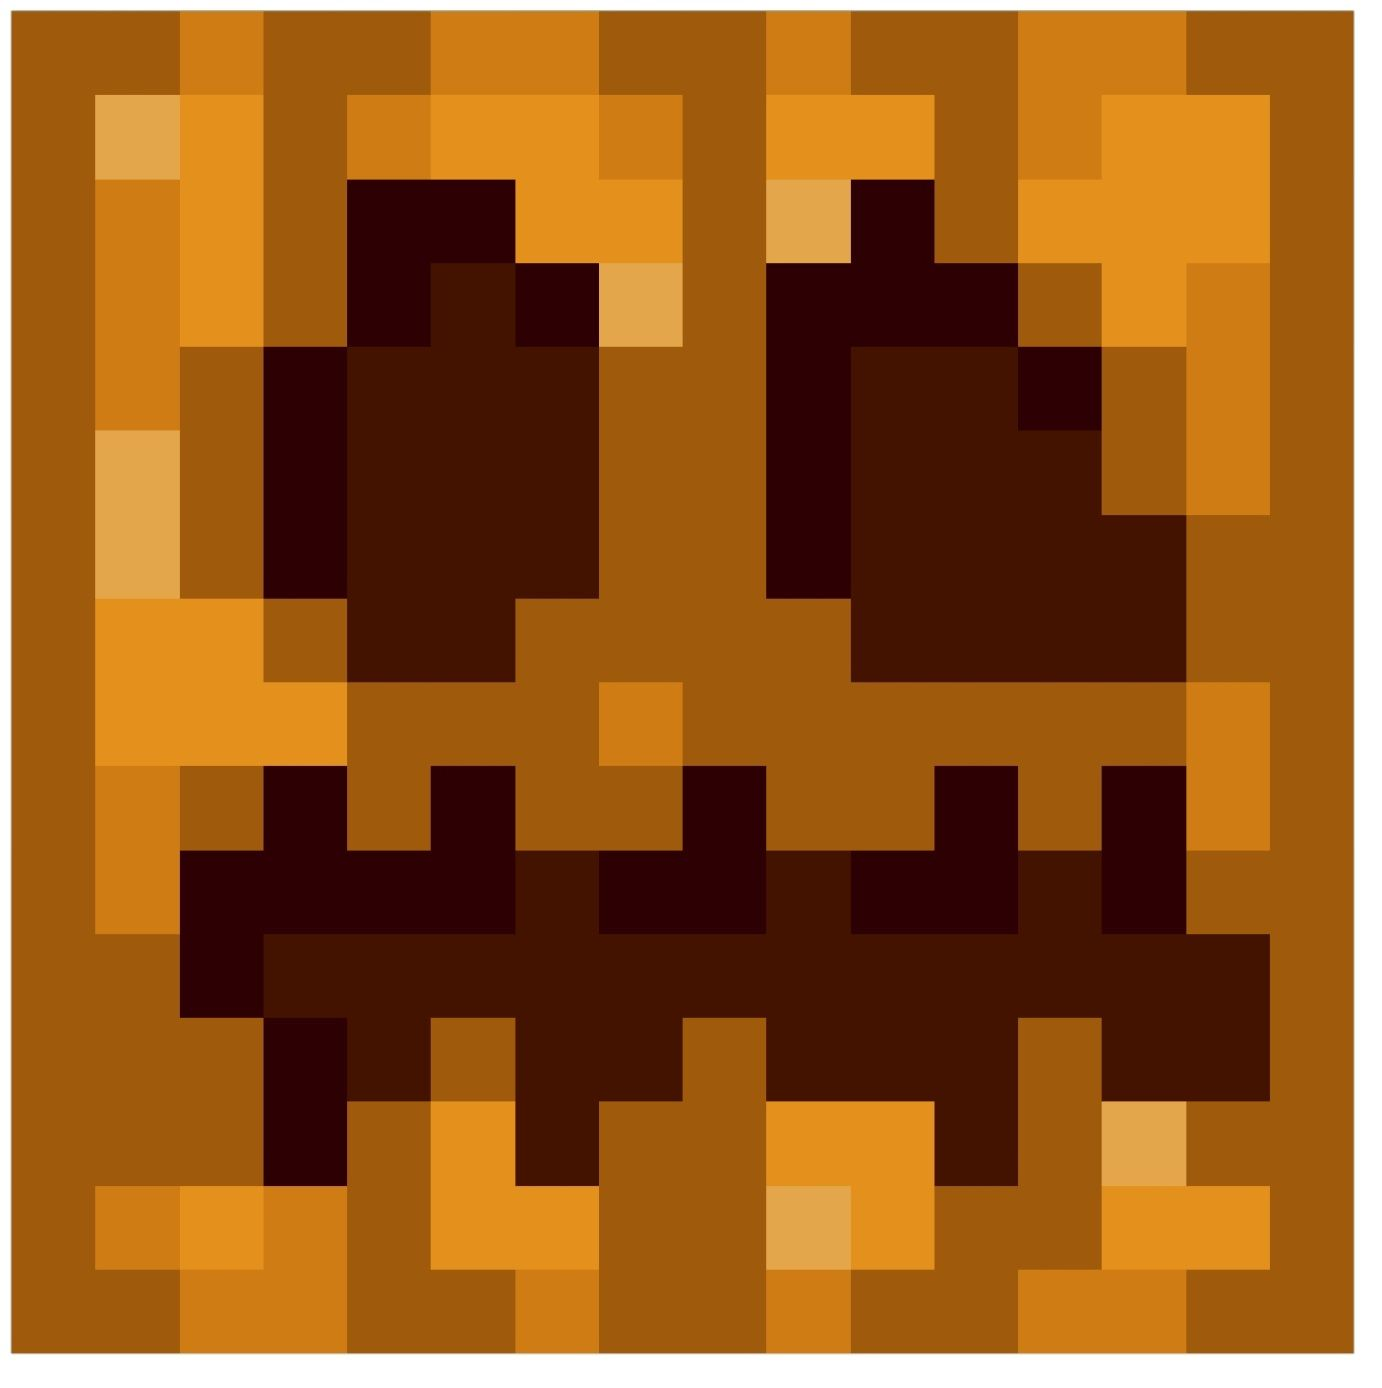 Minecraft Characters Faces Pin By Amt1242 On Halloween Ideas Minecraft Characters